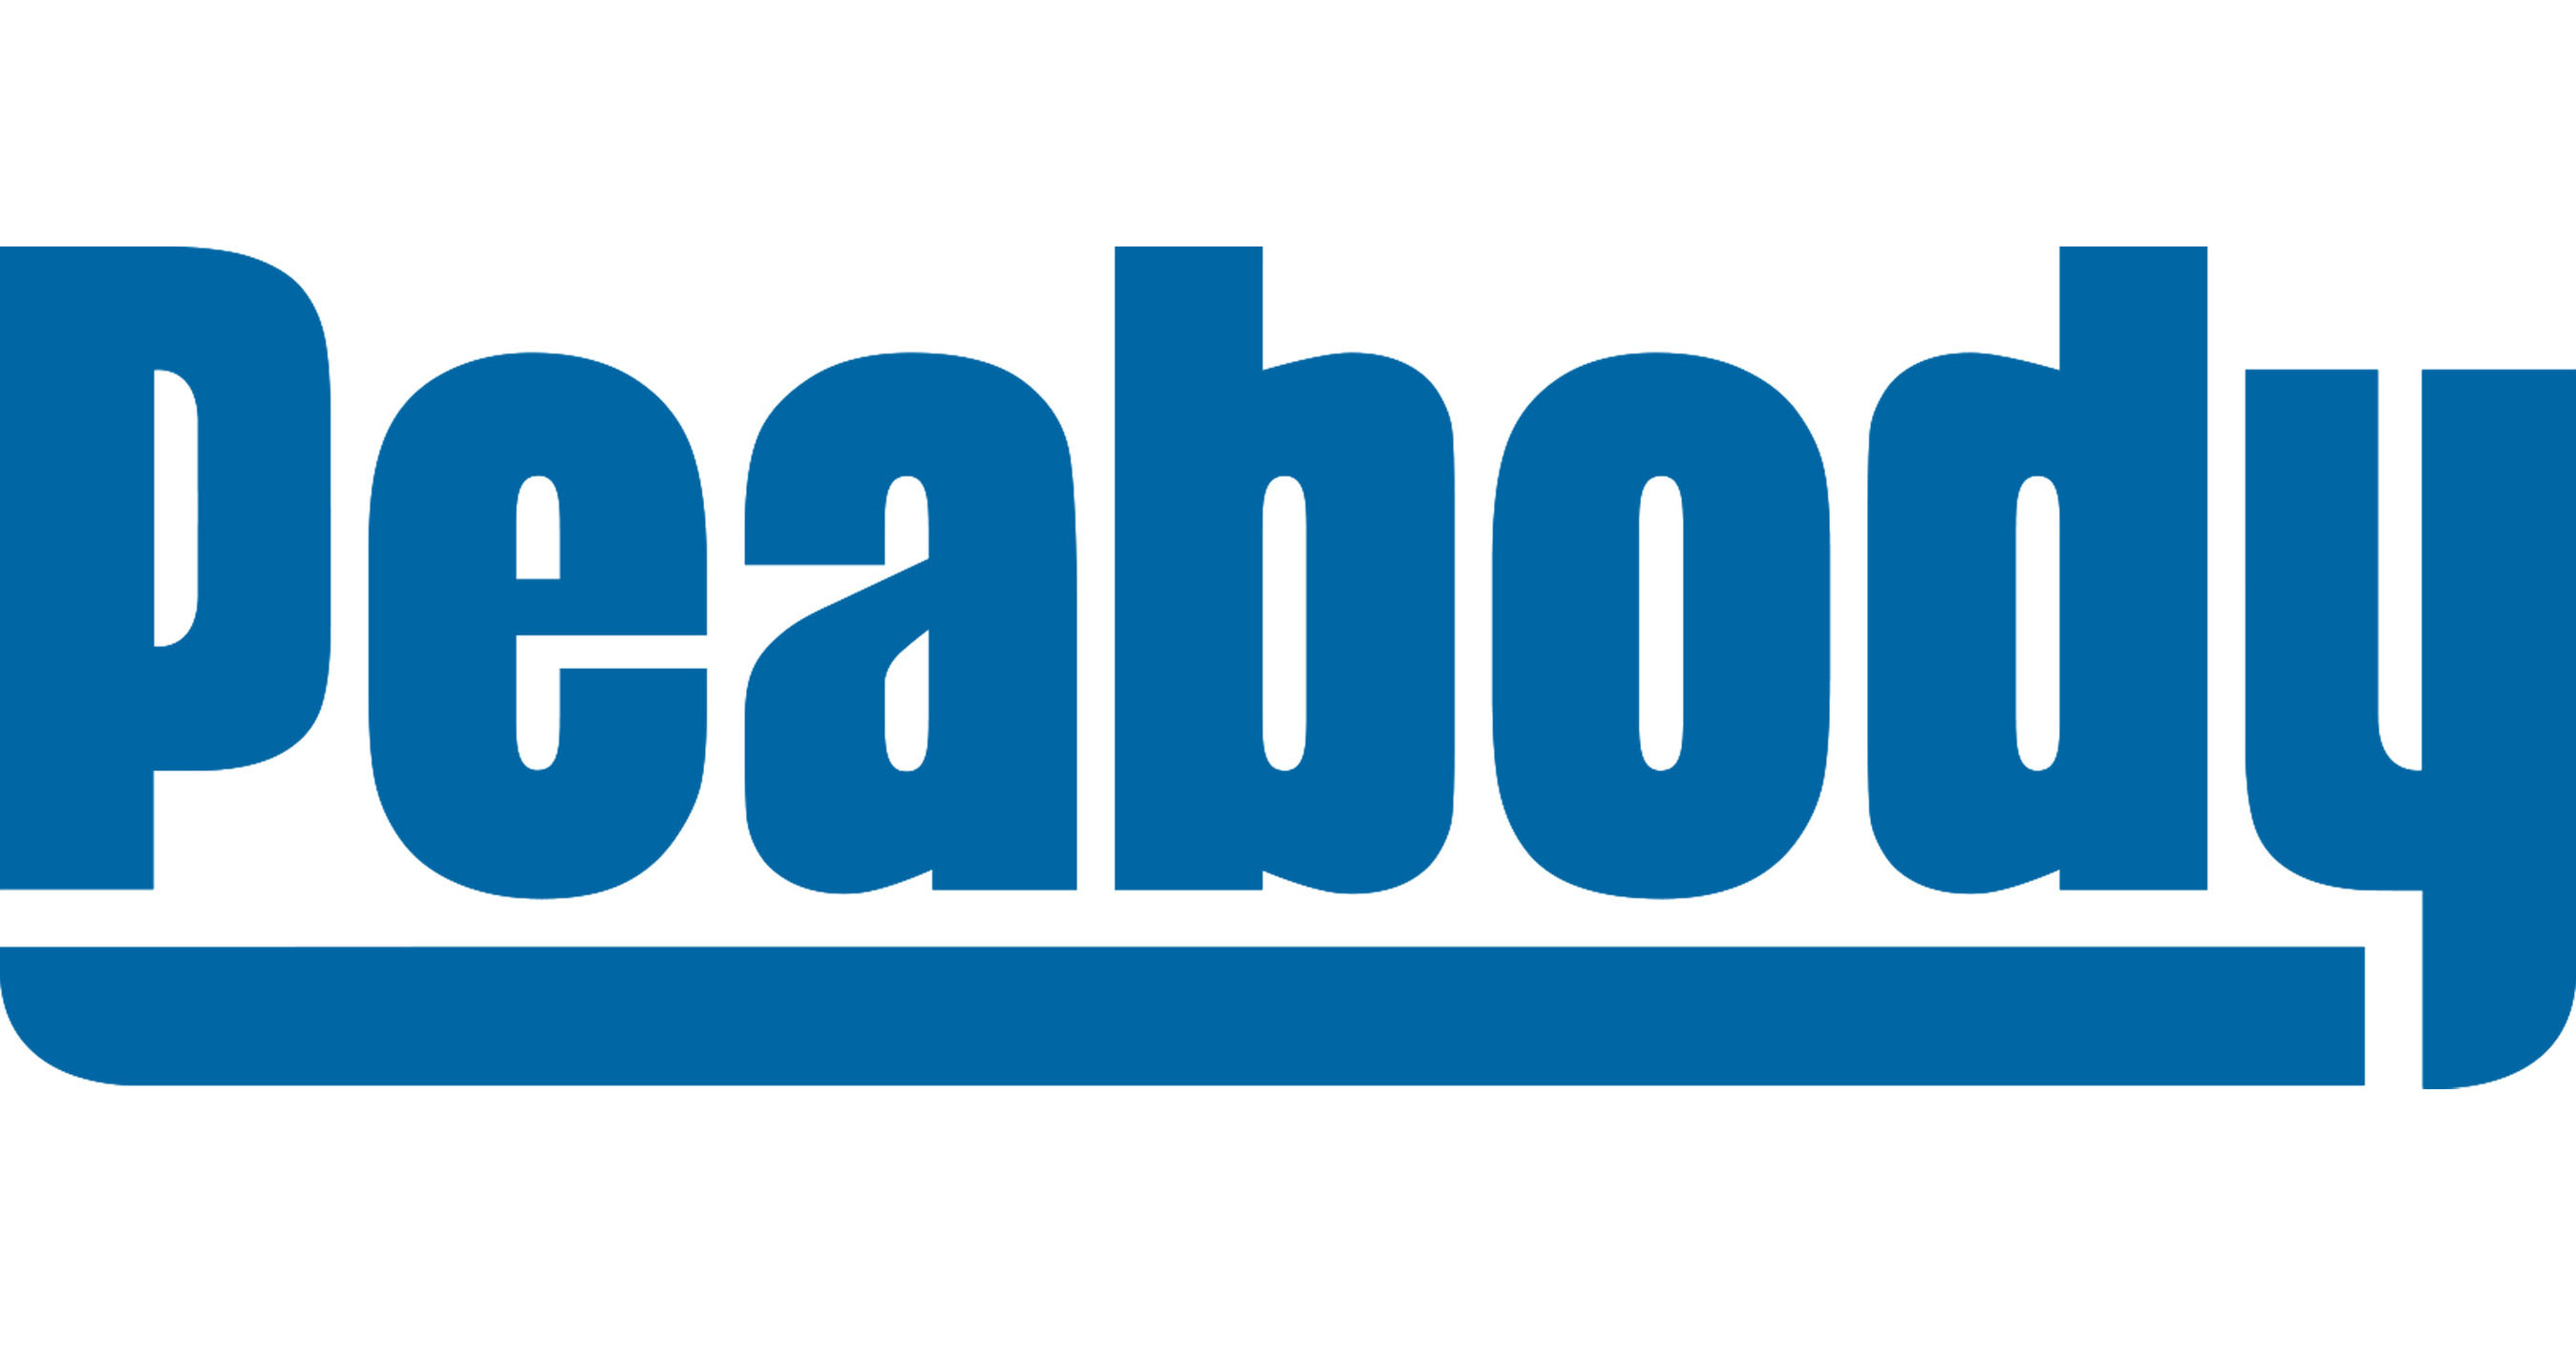 Peabody Announces Expiration Of Consent Solicitations Relating To Its 6.000% Senior Secured Notes Due 2022 And 6.375% Senior Secured Notes Due 2025